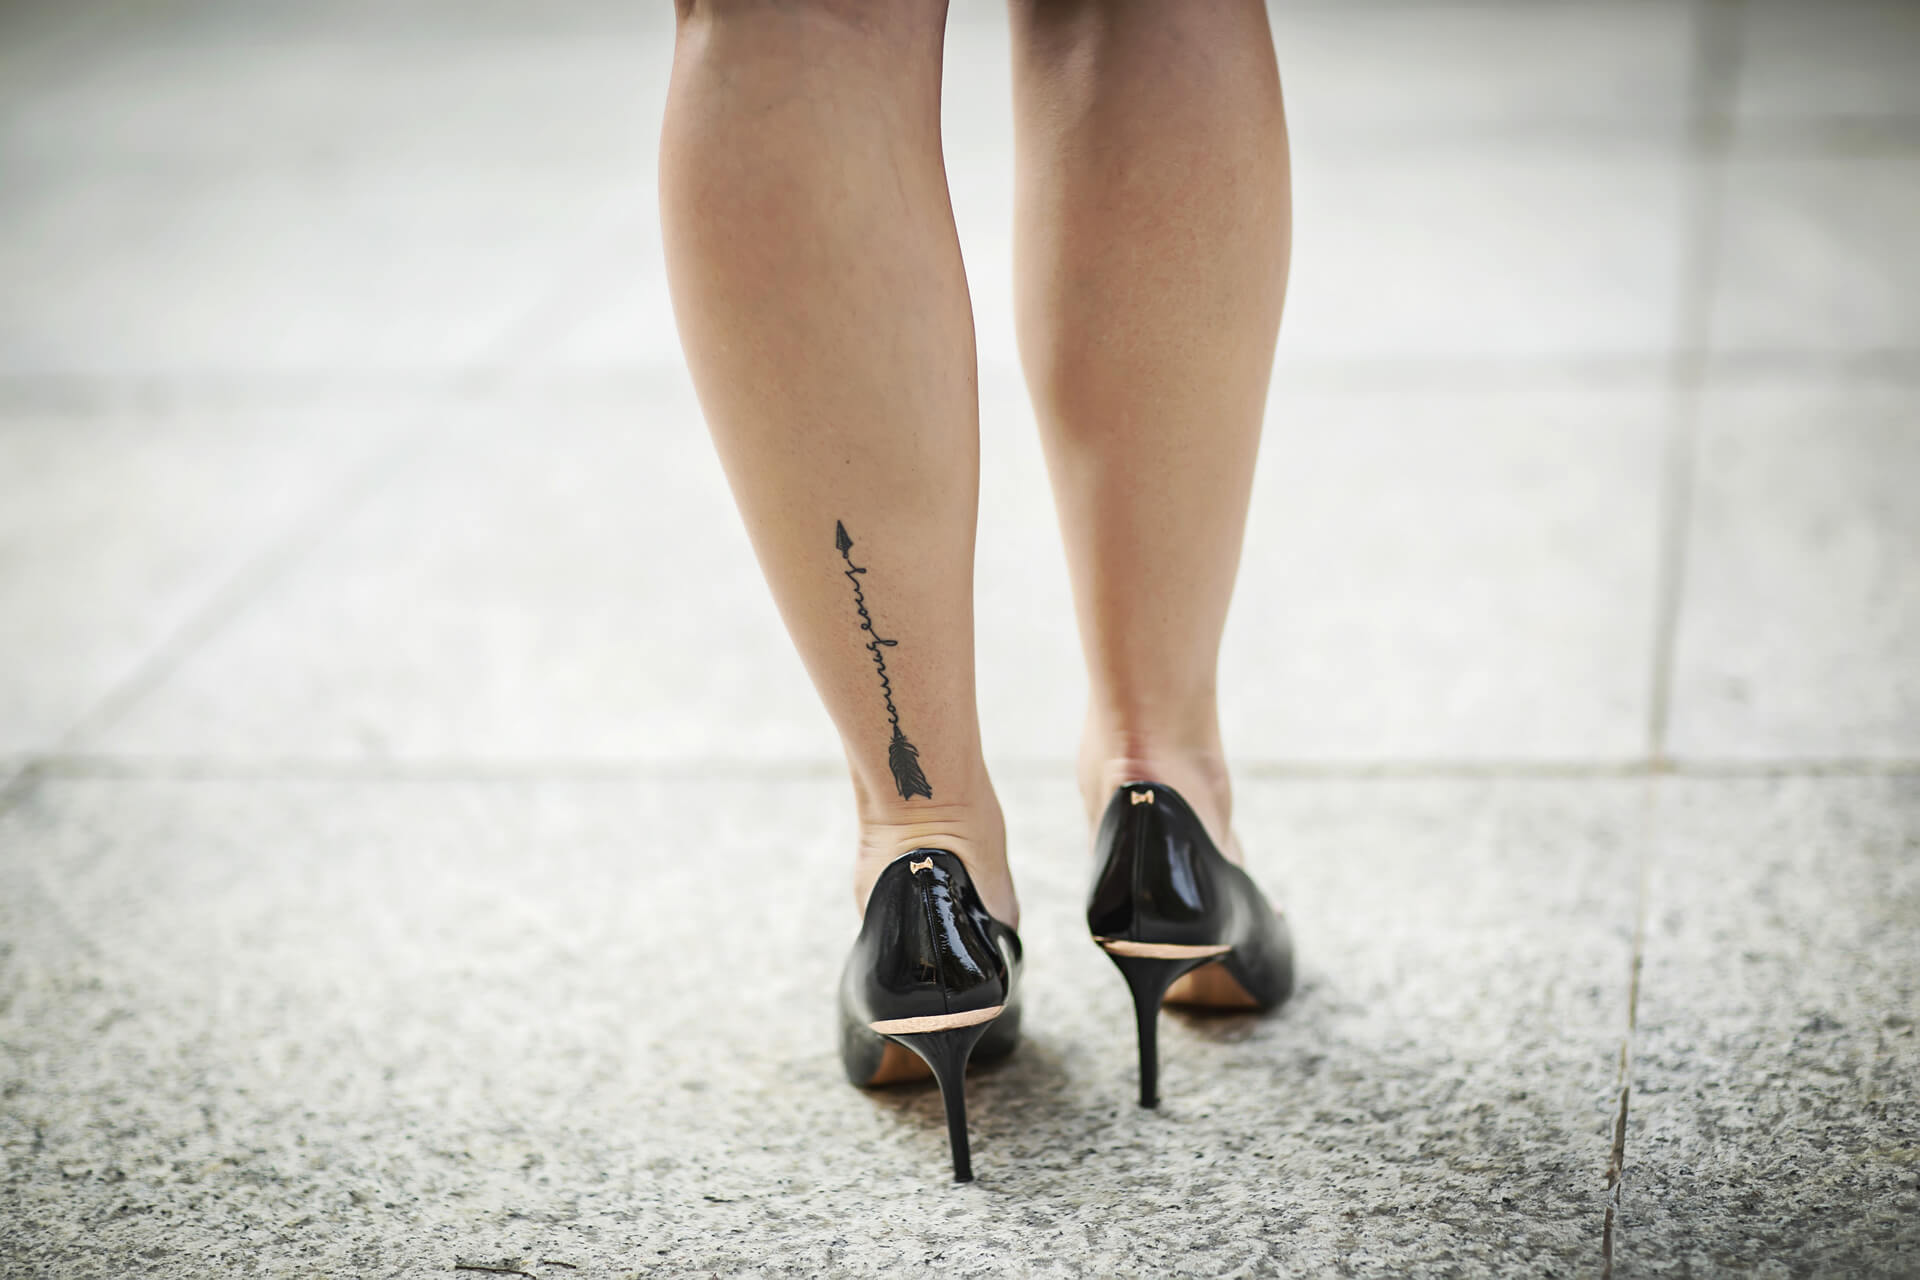 sherrie-clark-courage-to-be-seen-women-tattoo